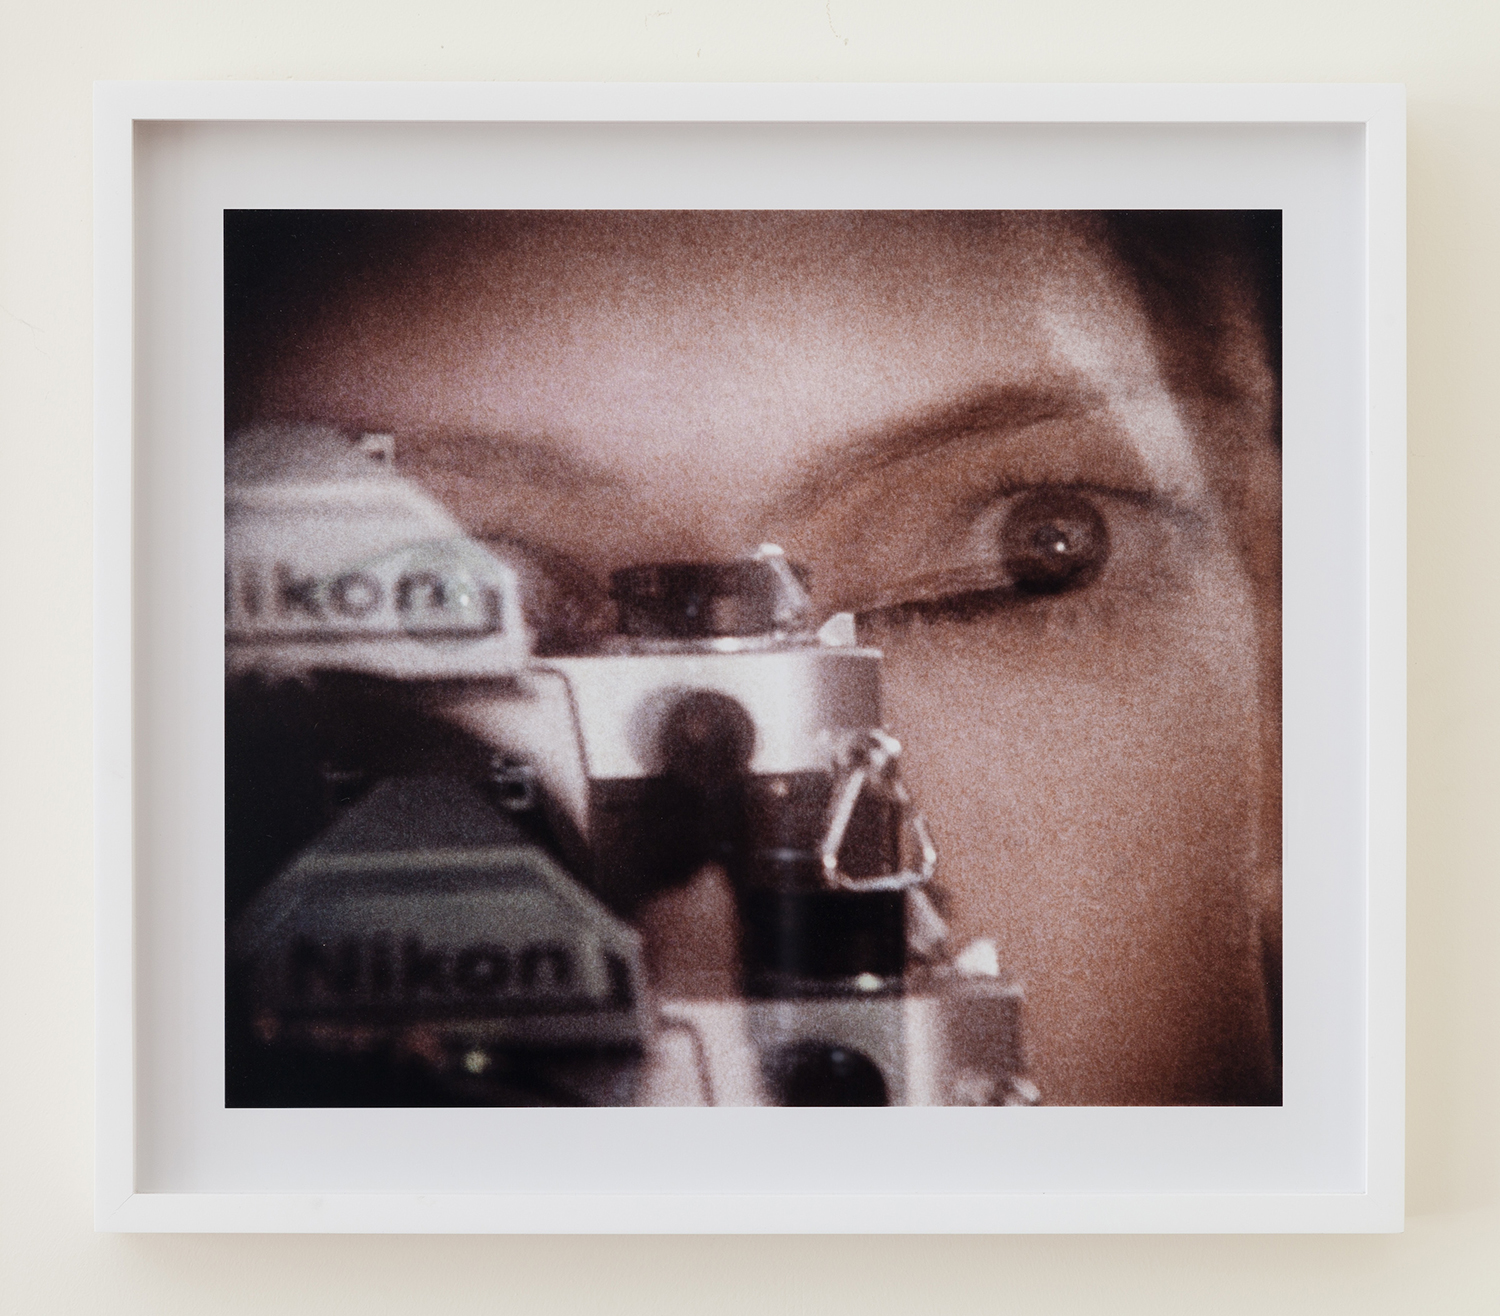 Anne Collier   Double Exposure   2011  C‐print  14 3/8 x 16 1/2 inches